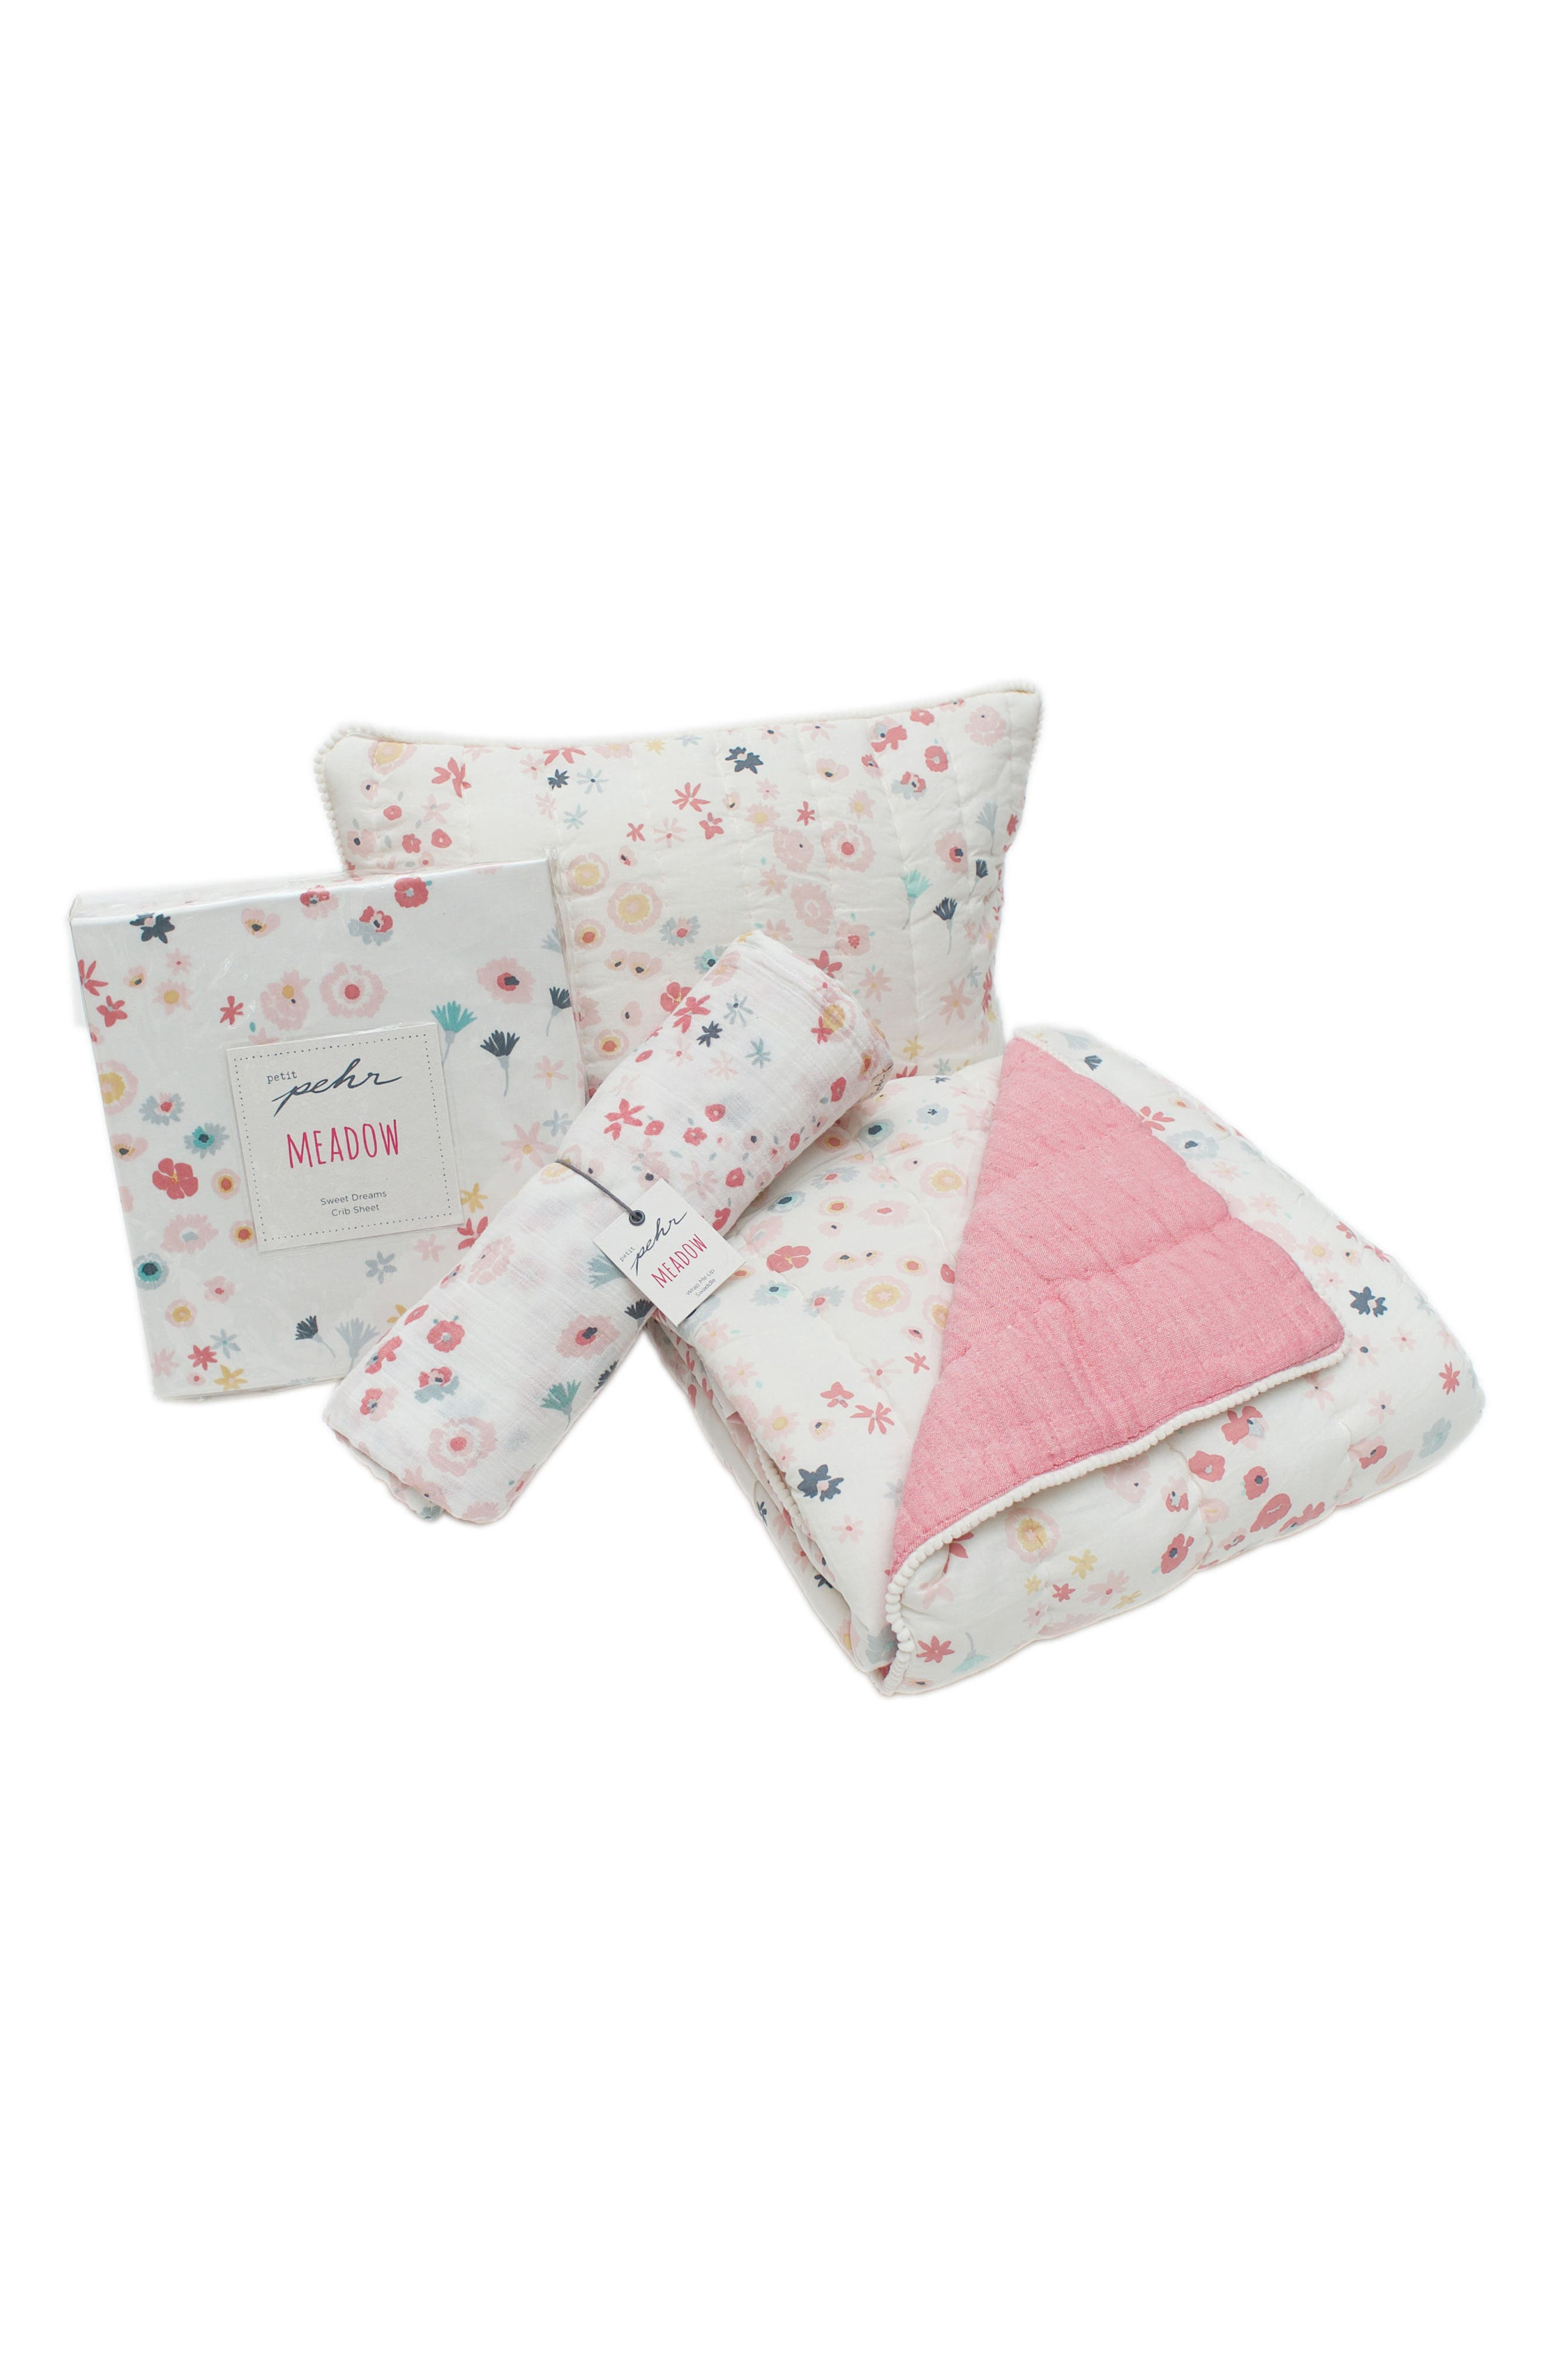 Showers Crib Sheet, Swaddle, Blanket & Pillow Set,                         Main,                         color, PINK